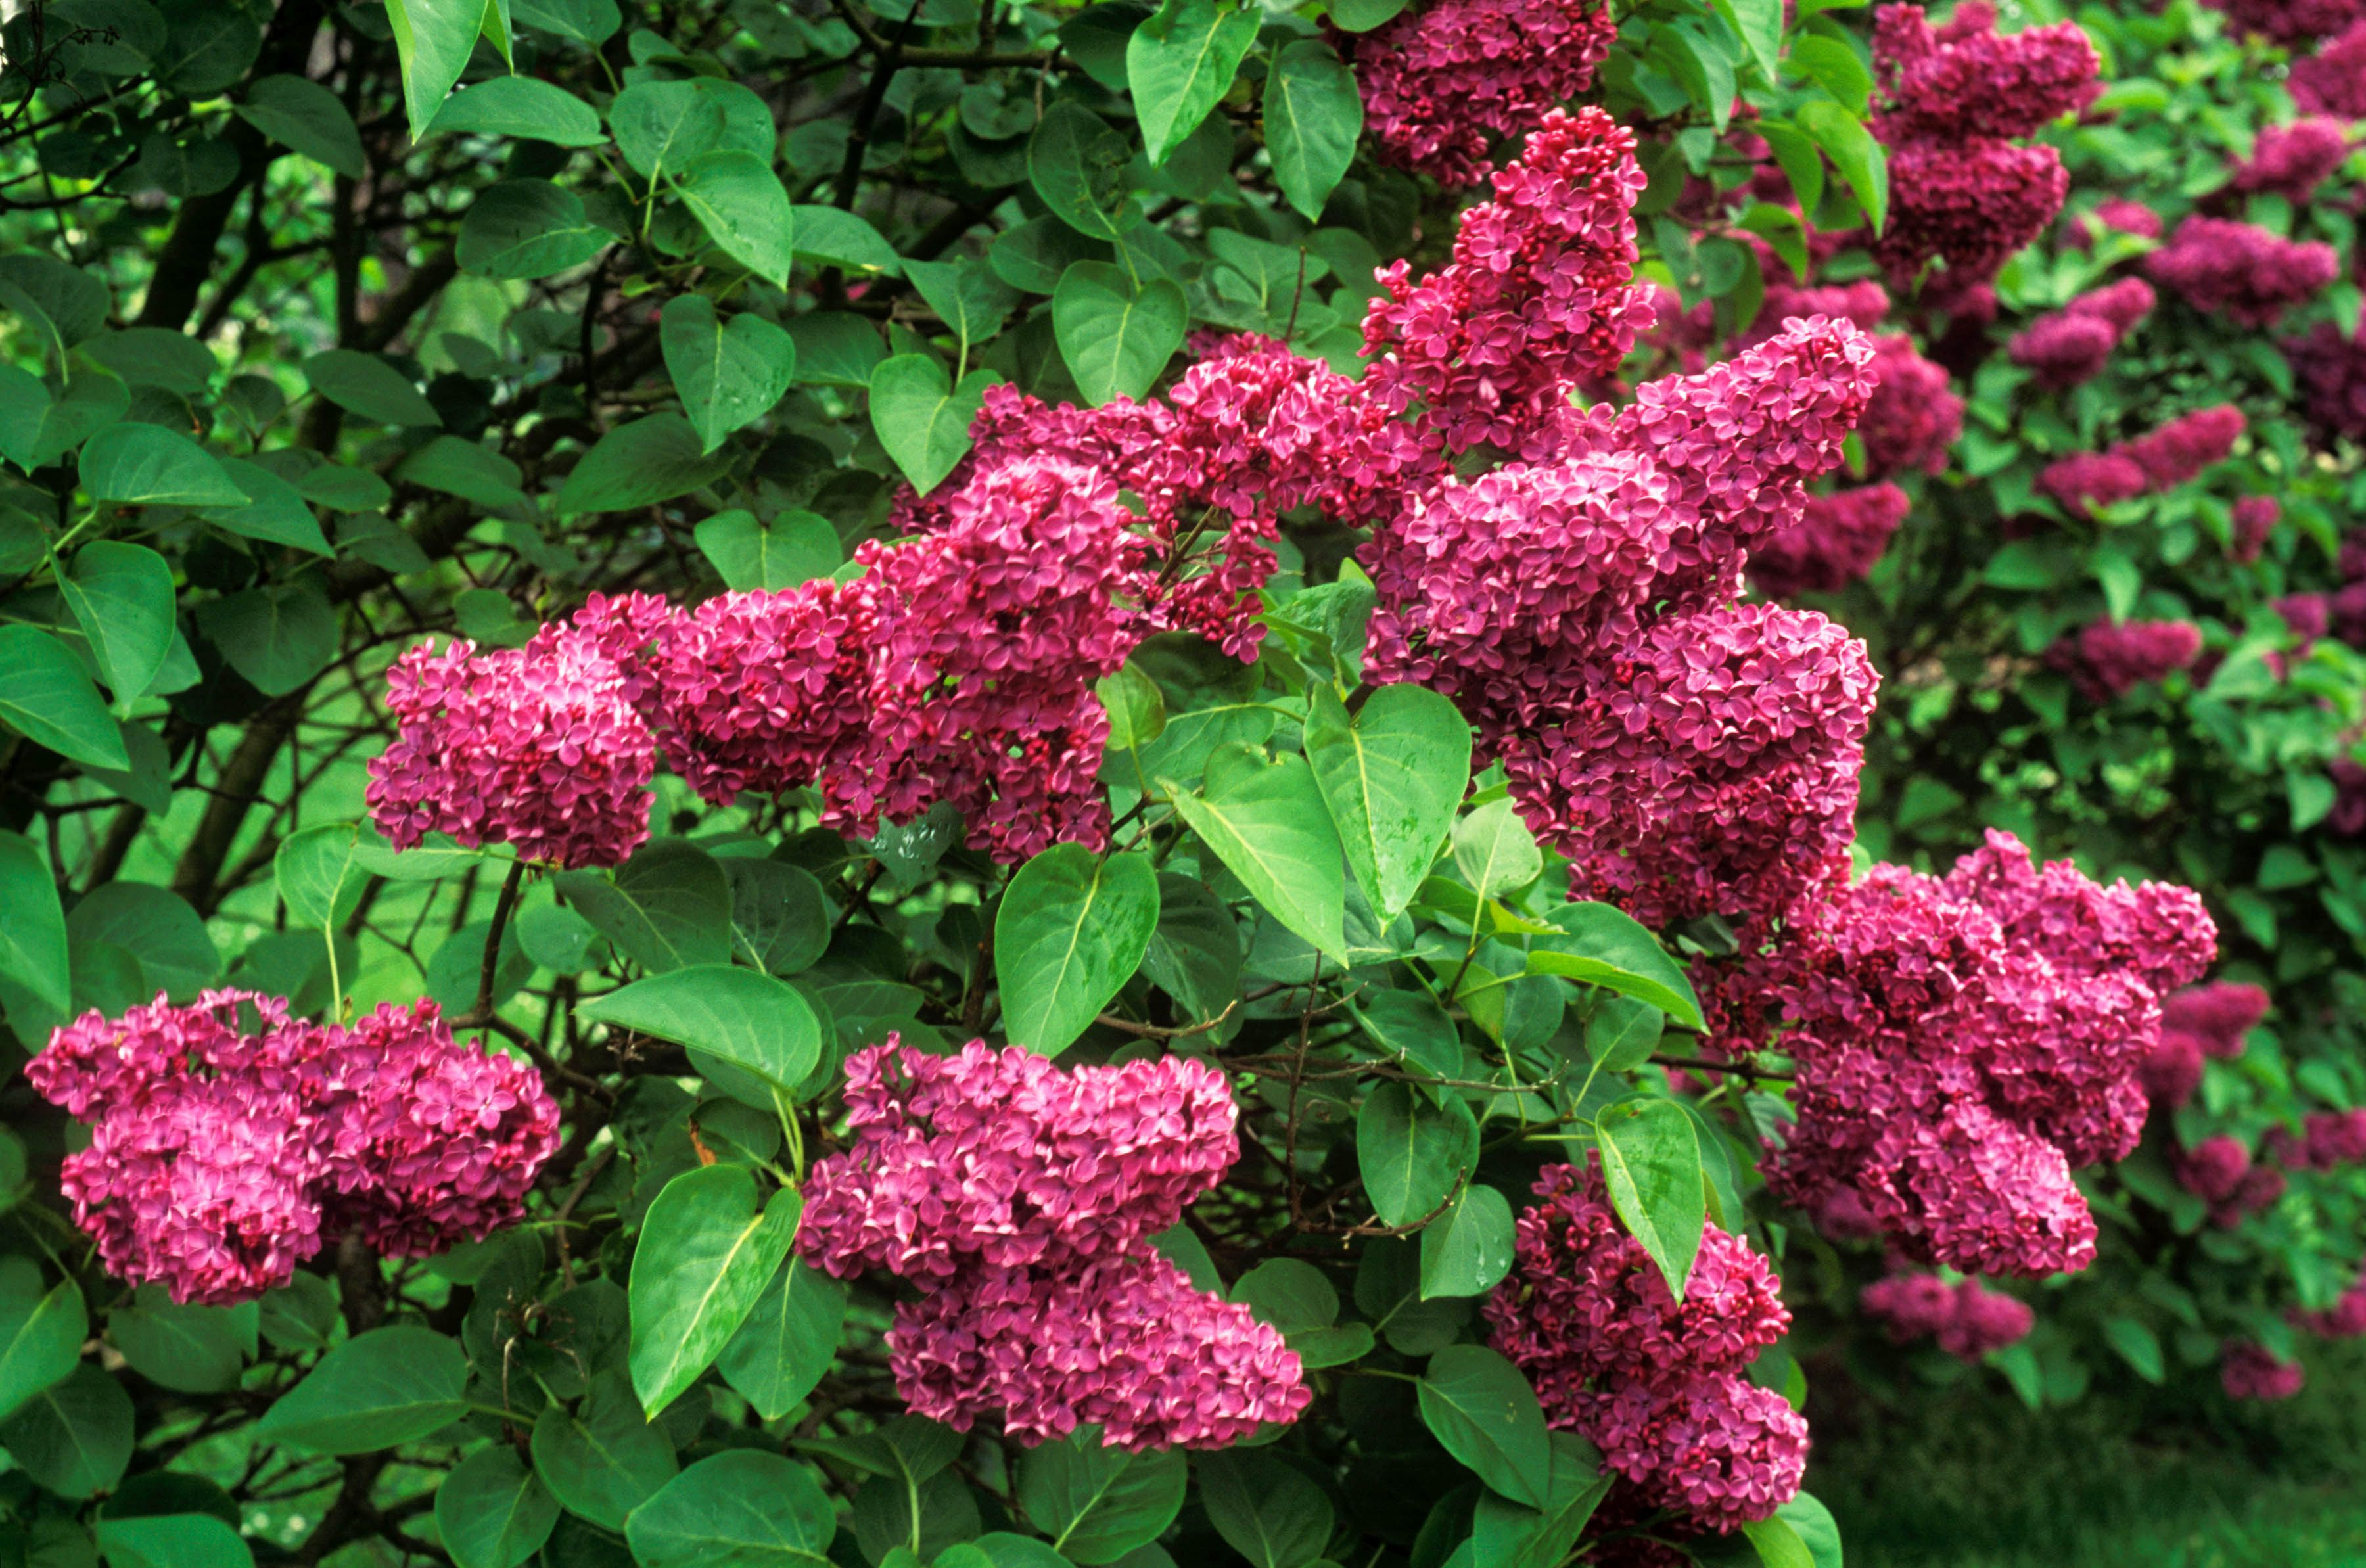 The Andeken an Louis Spaeth lilac with purple-red blooms